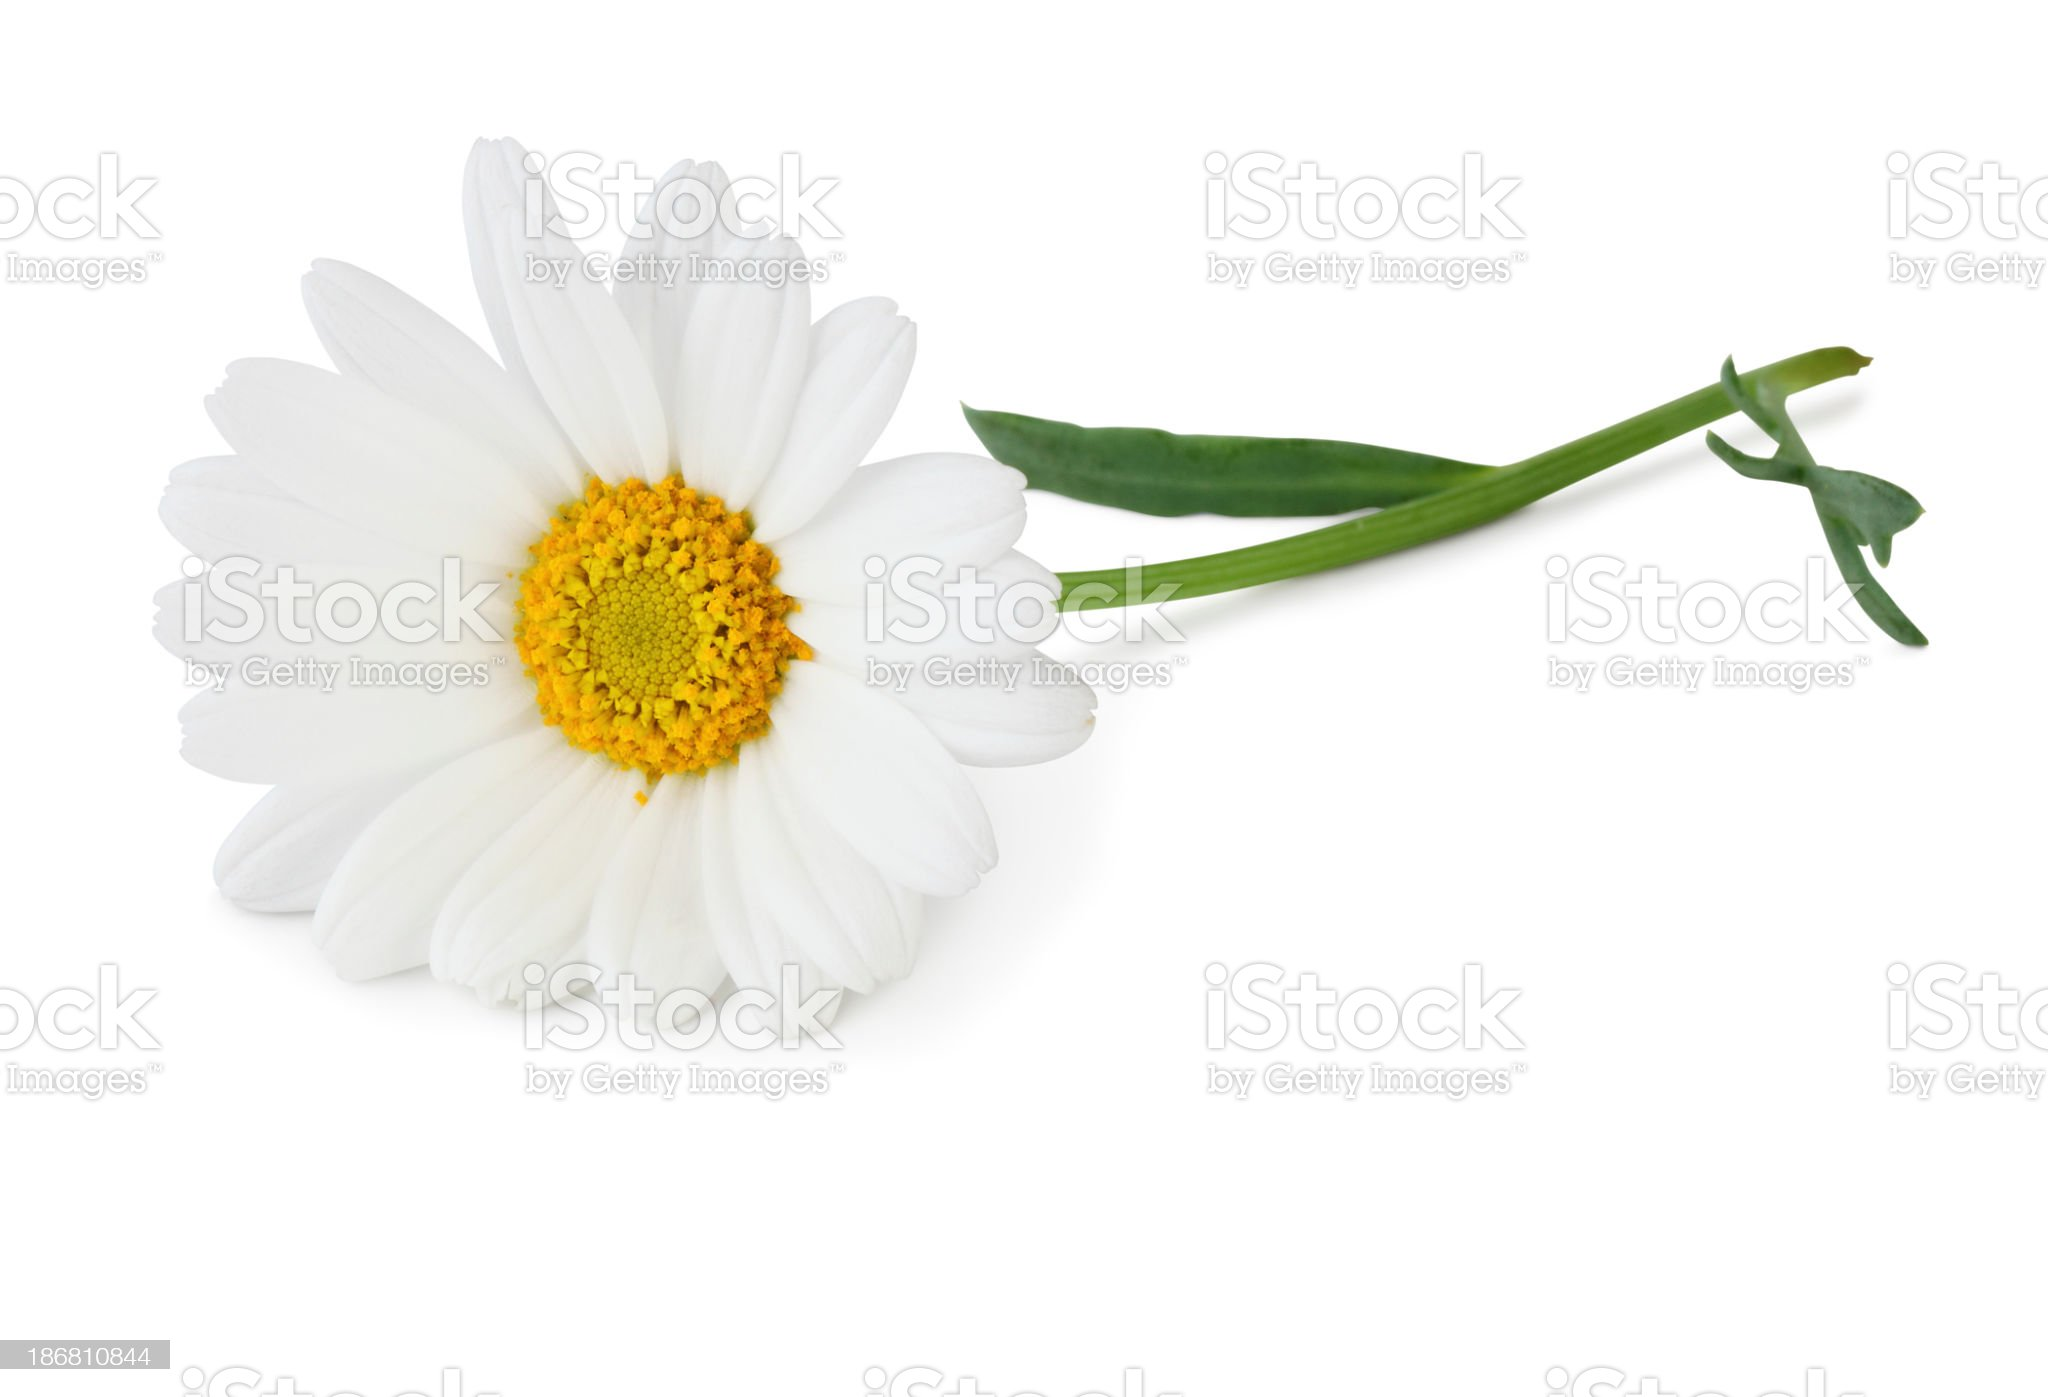 Stock photo of a white daisy on a white background  royalty-free stock photo